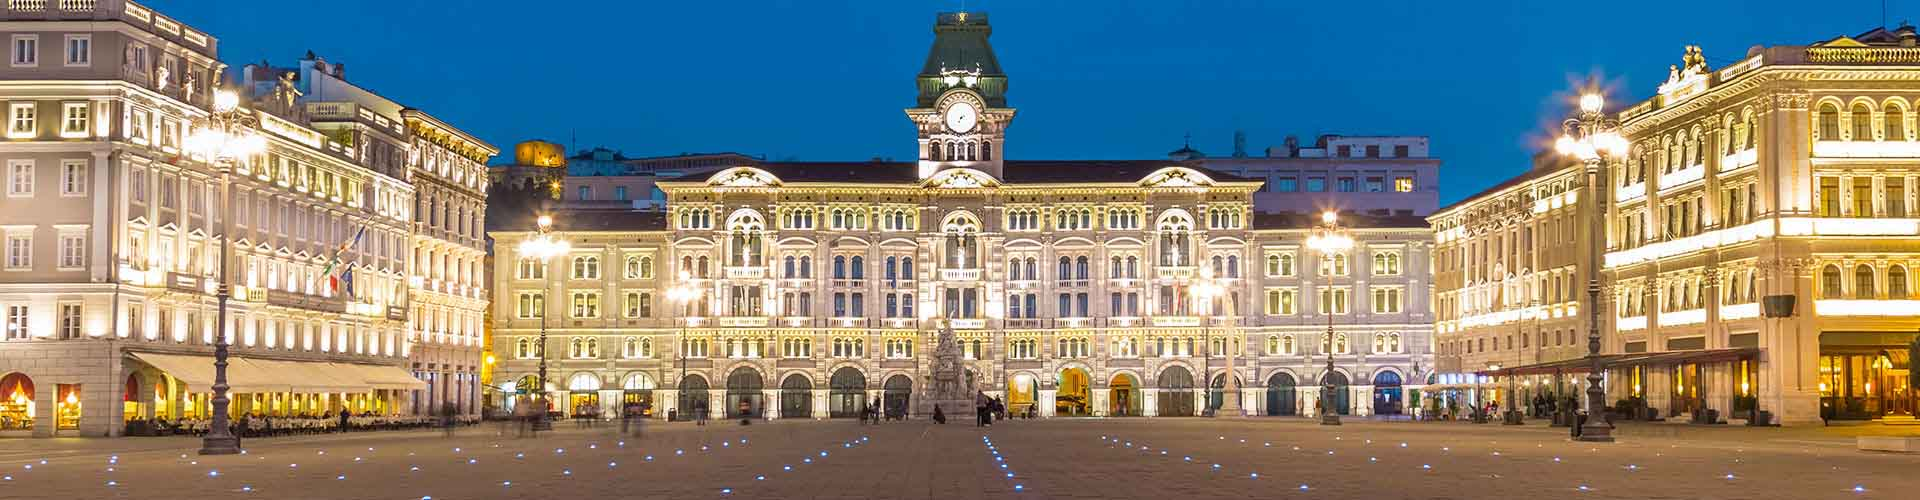 Trieste – Hostels in Trieste. Maps for Trieste, Photos and Reviews for each hostel in Trieste.